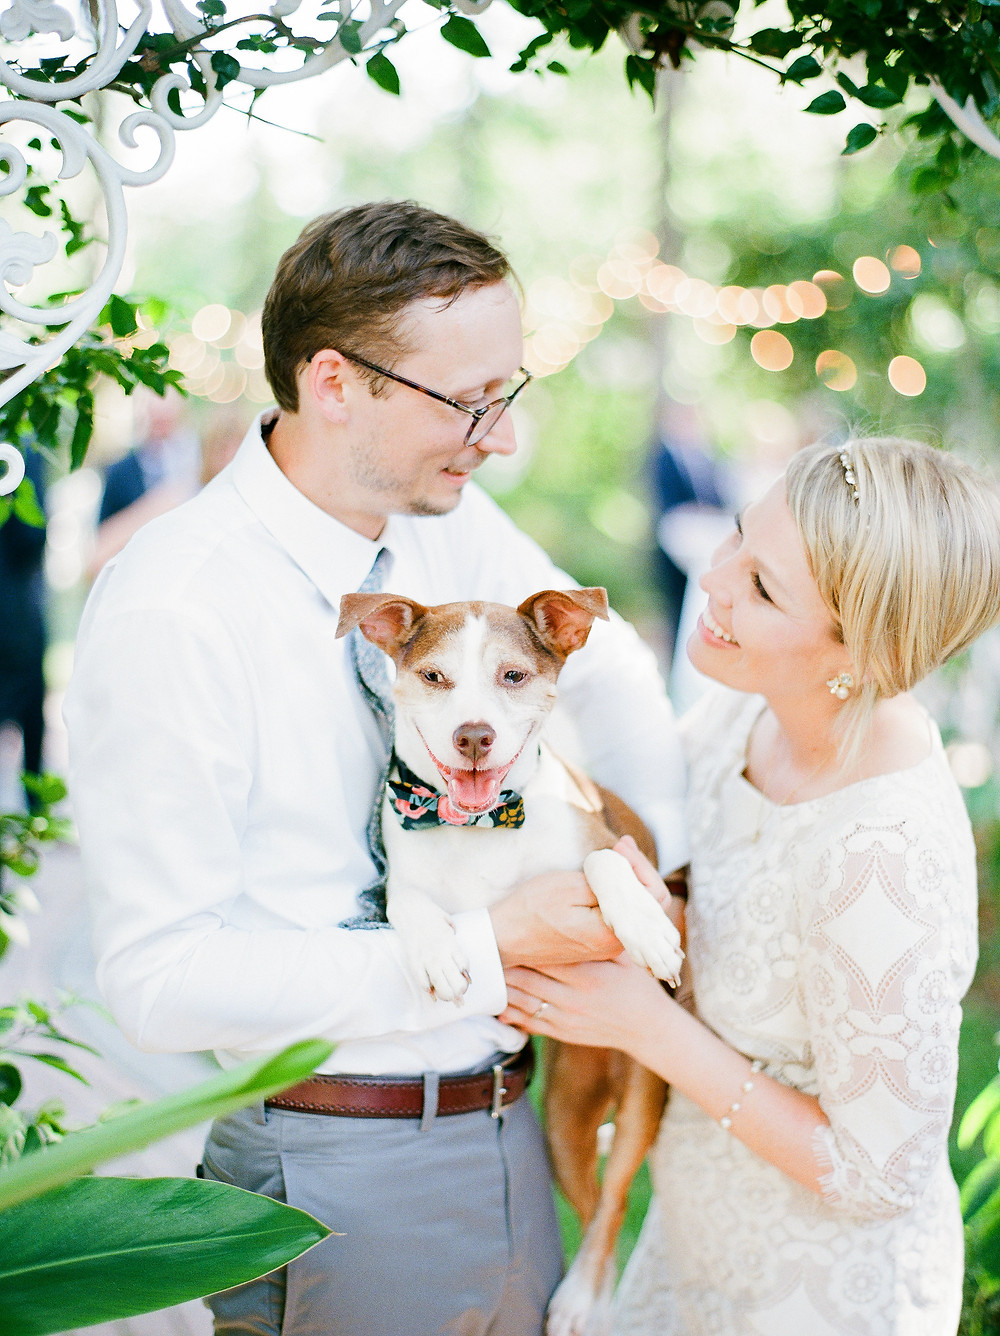 Couple smiling with their dog on their wedding day at Sweetwater Branch Inn in Gainesville Florida.